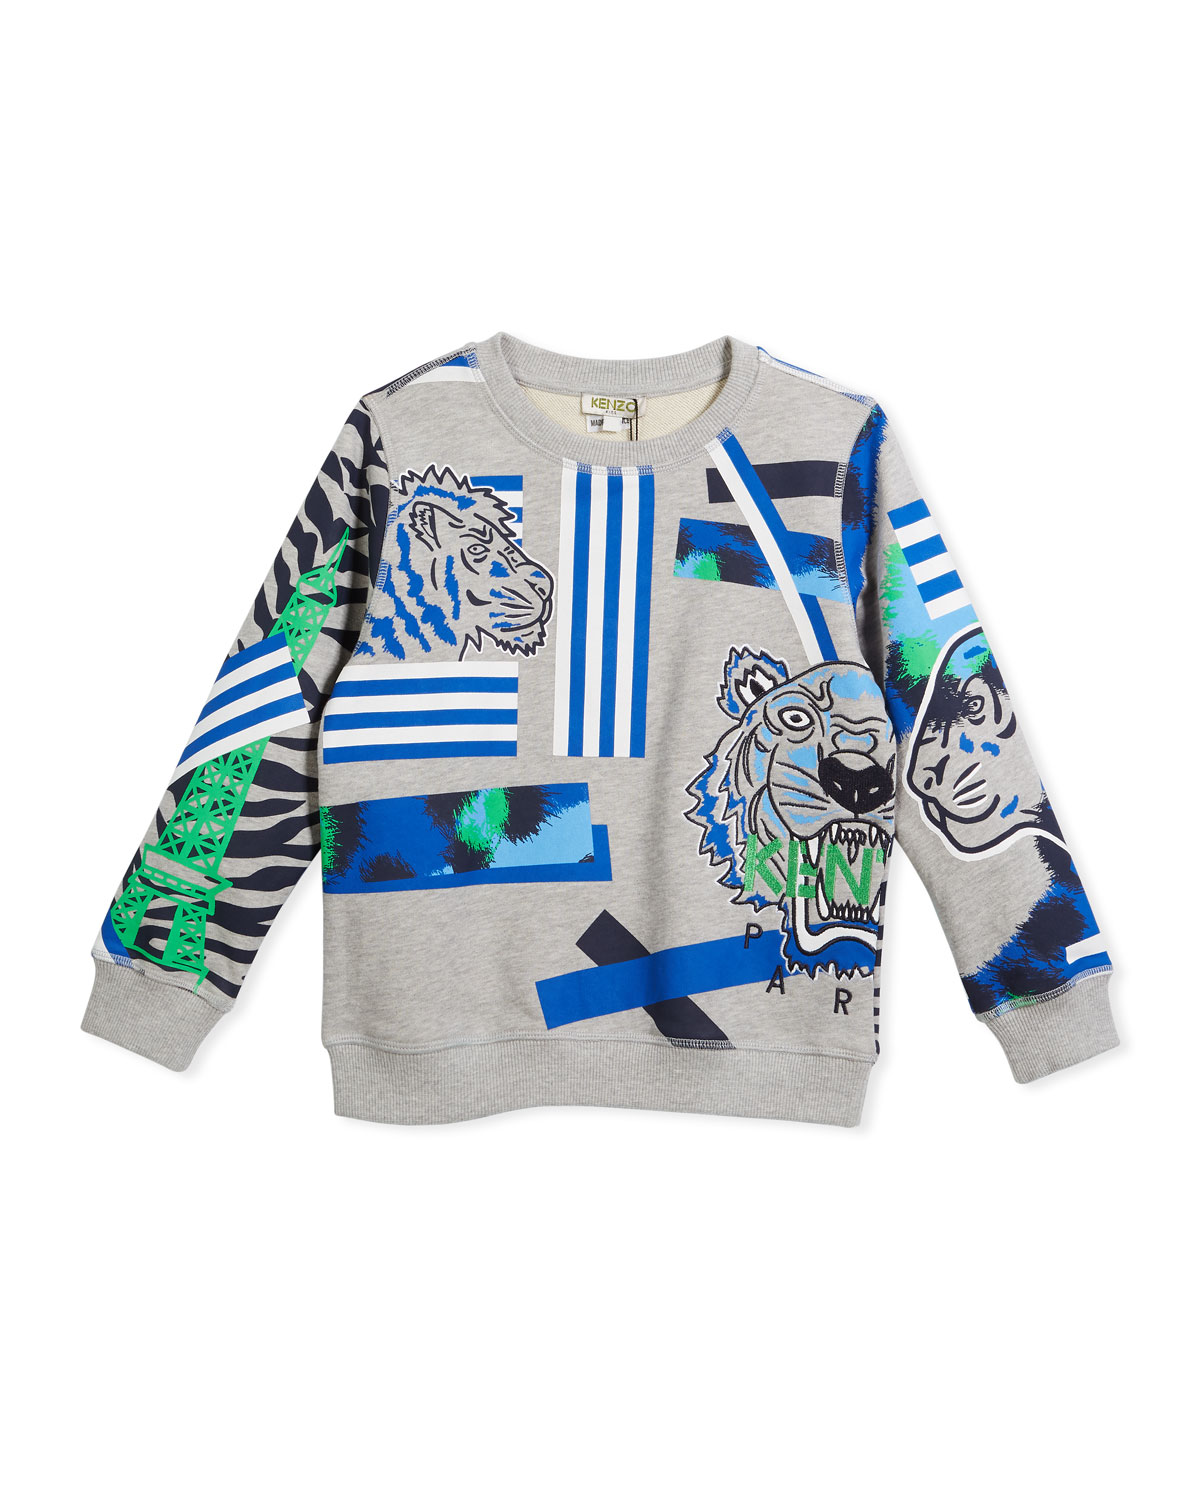 3620de8b Kenzo Multi-Icon Tiger Striped Sweatshirt, Gray, Size 14-16 | Neiman ...